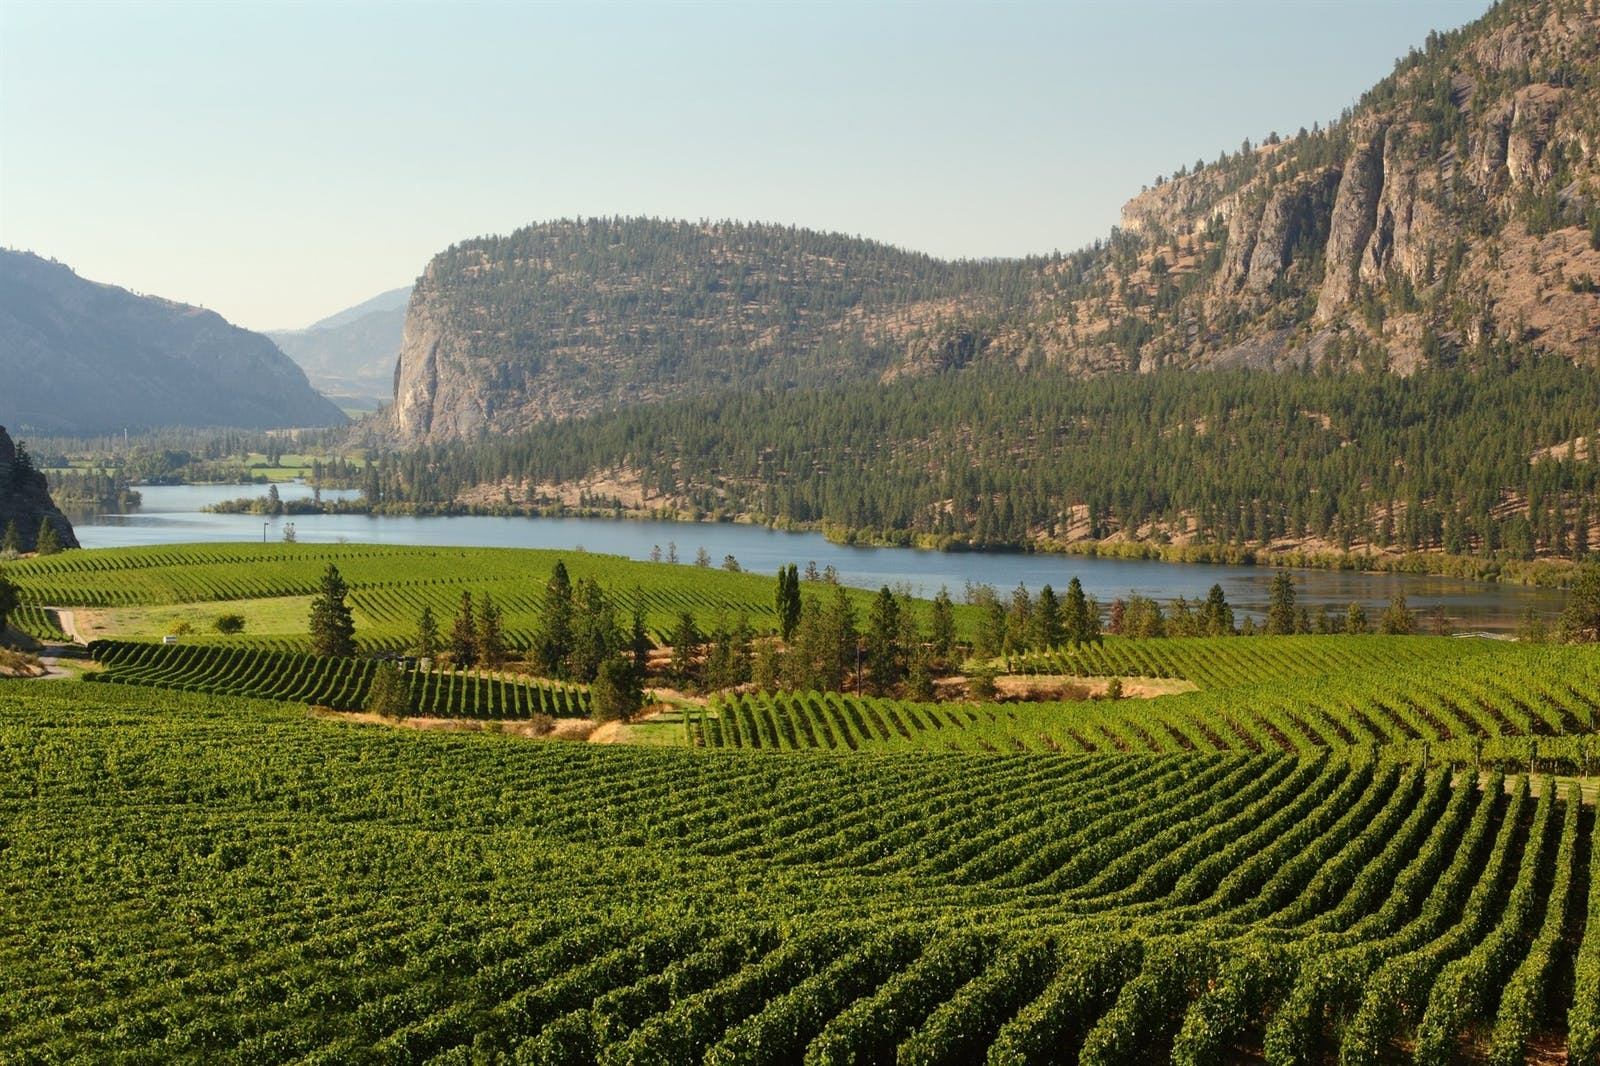 okanagan valley vineyards british columbia